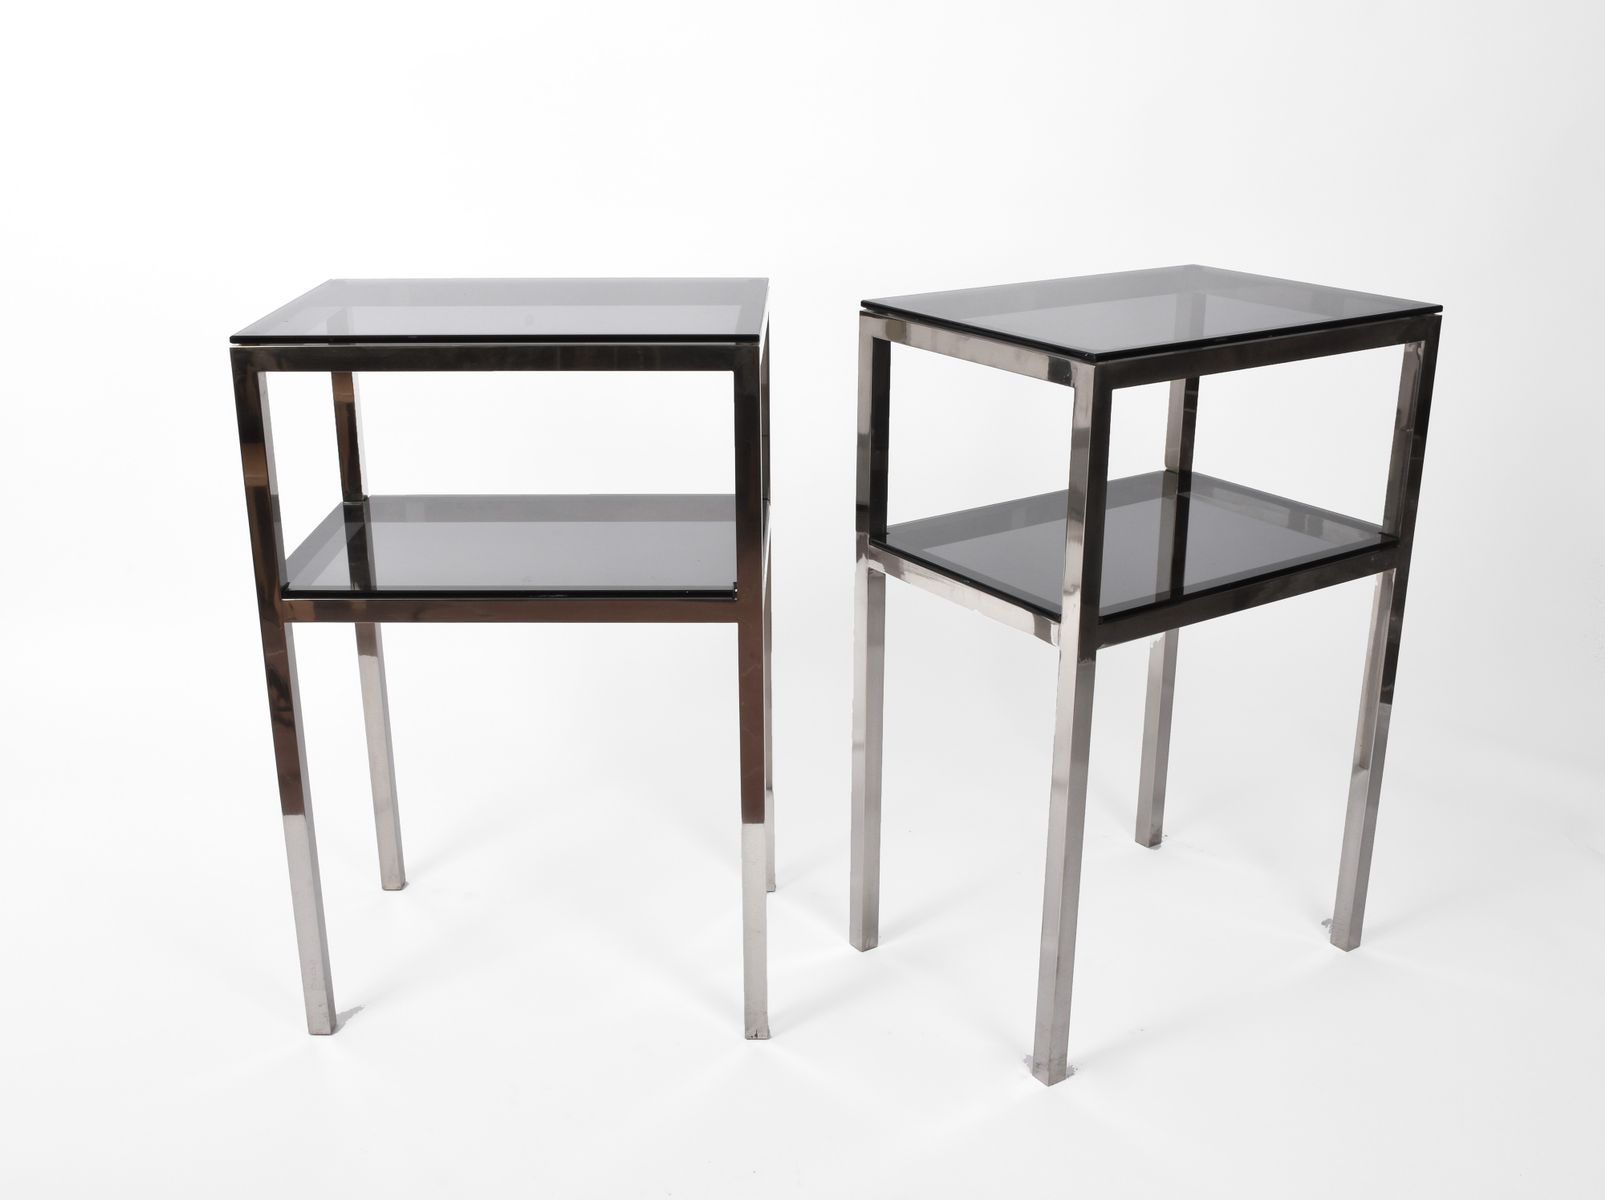 mid century two tiered accent tables set for pamono table pub style dining cabinet living room with storage kitchen side lace runners marble coffee round folding white concrete